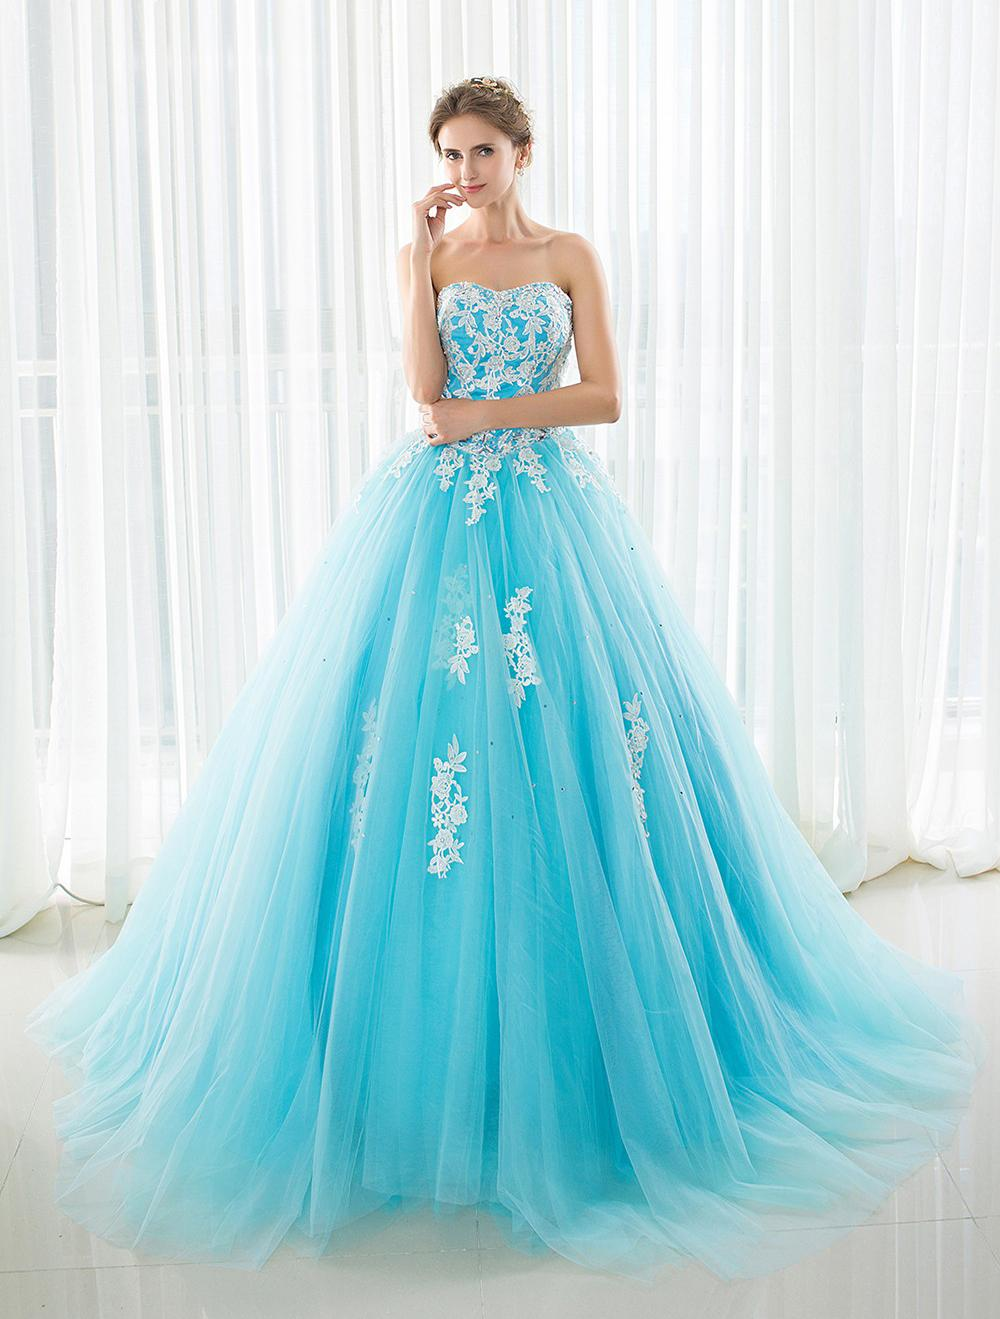 Ball Gown Prom Dresses Long Tulle Puffy Quinceanera Dresses Vestidos 15 Anos White Lace Appliques Sweet 16 Dresses Debutante Gown Ball Gowns Under 100